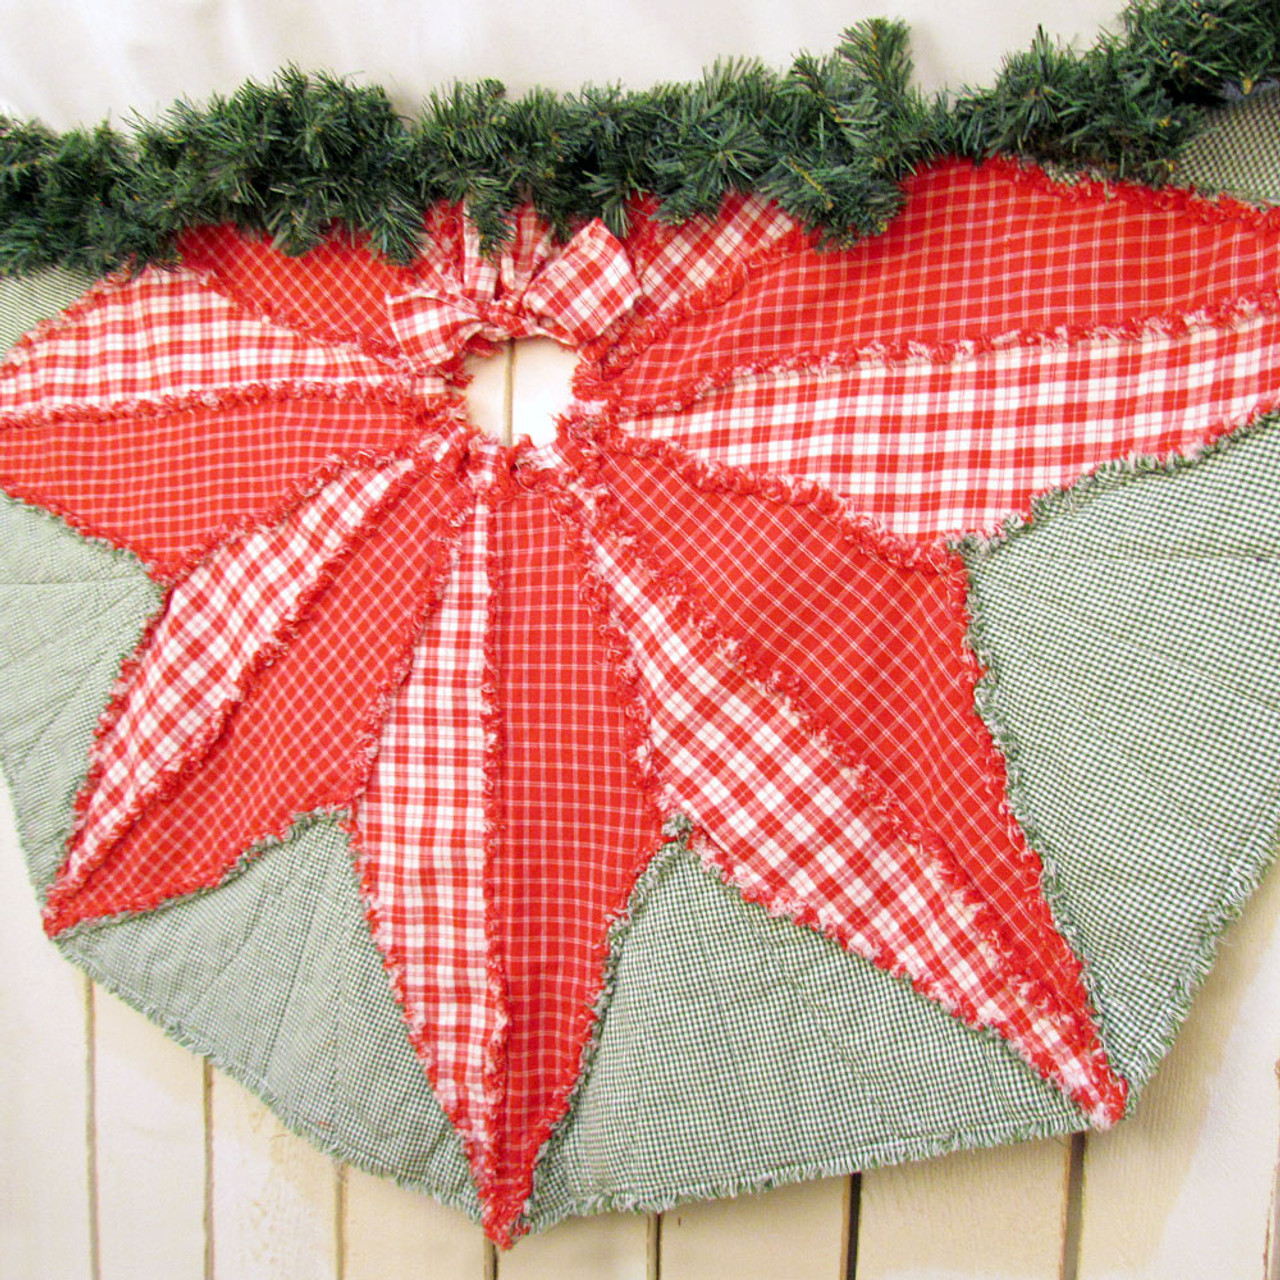 Poinsettia Star Quilted Christmas Tree Skirt Pattern Digital Jubilee Fabric